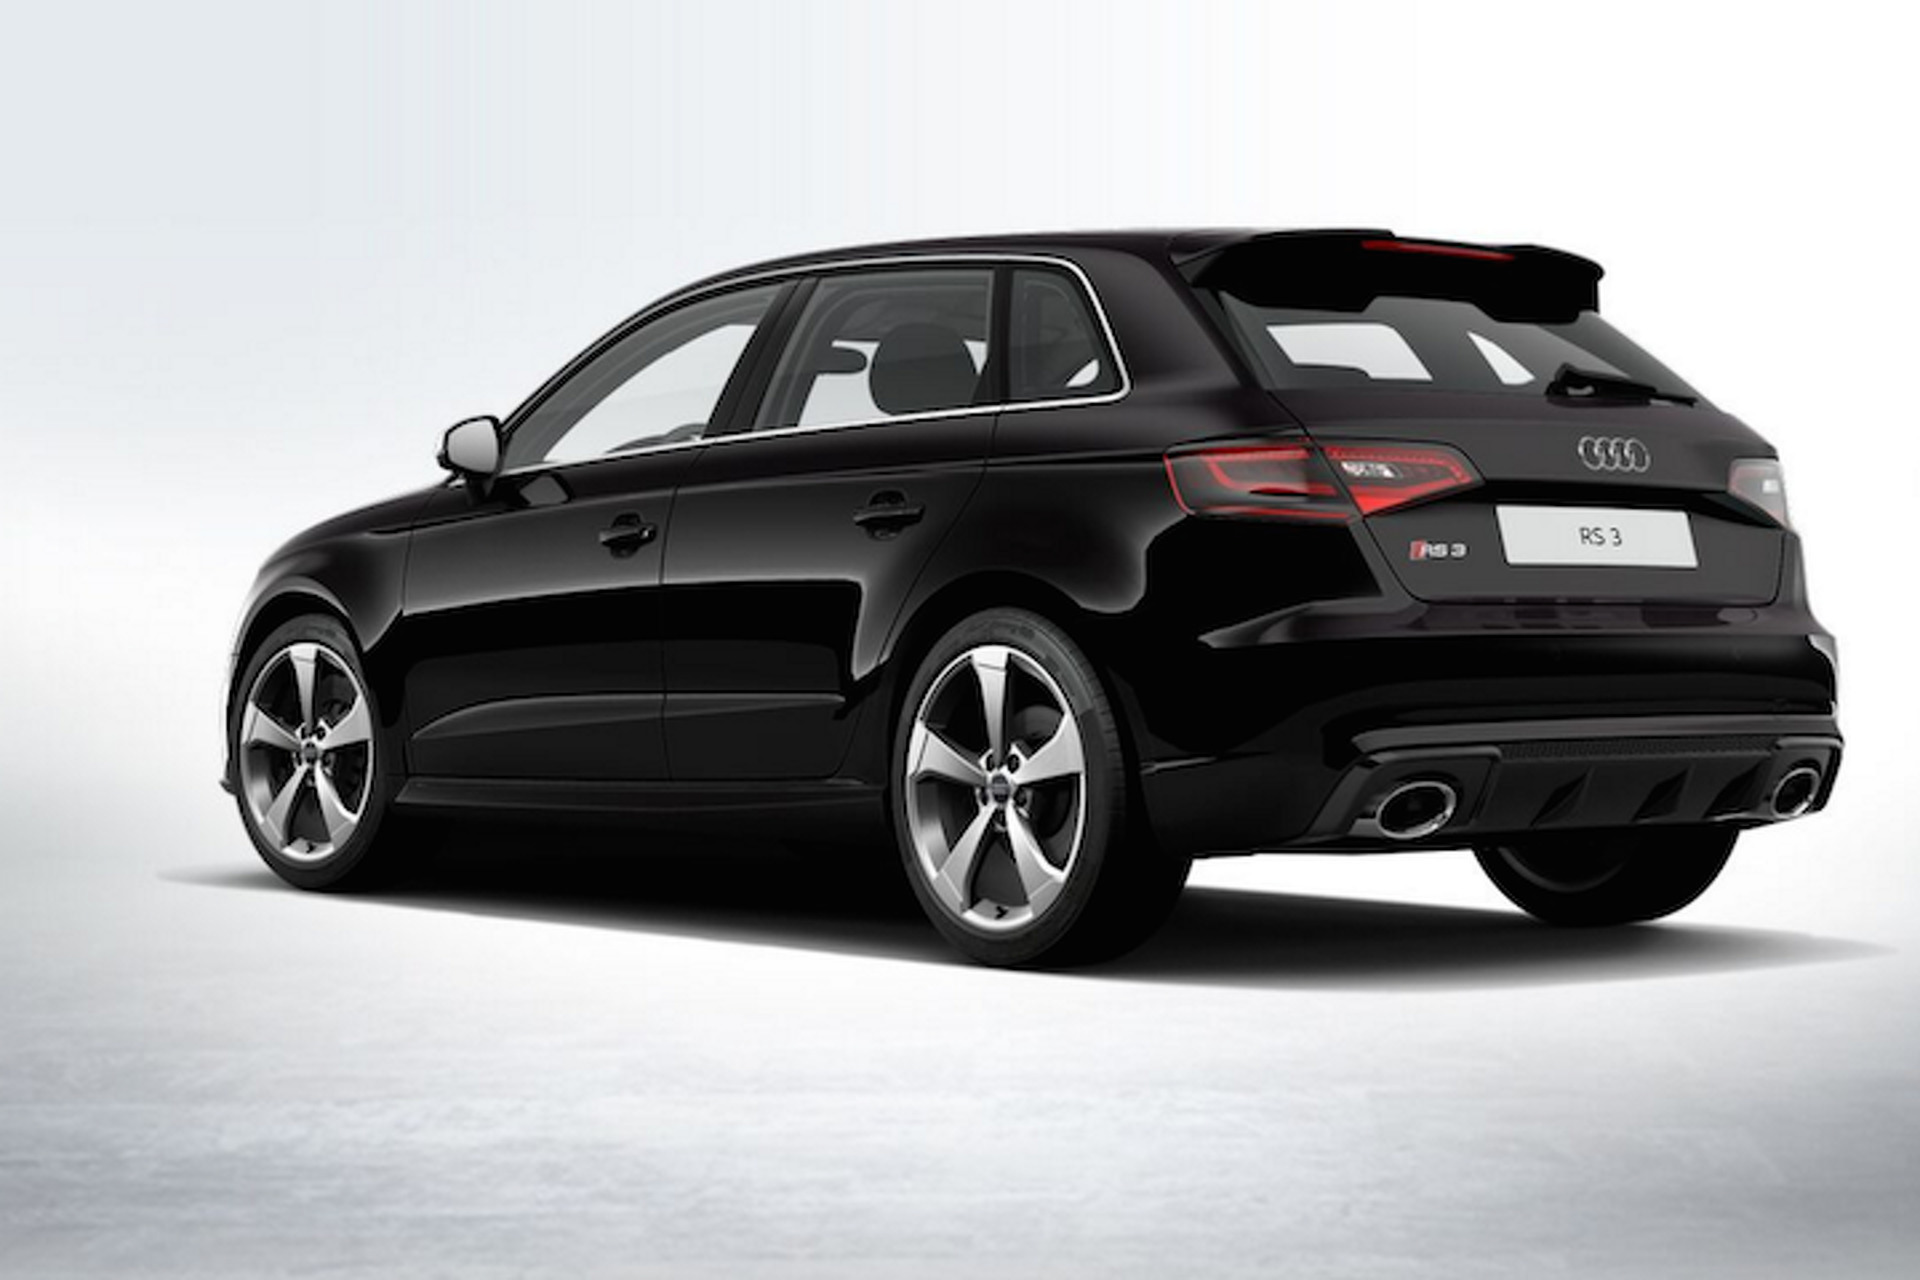 Audi RS3 Finally Coming to America With 400HP